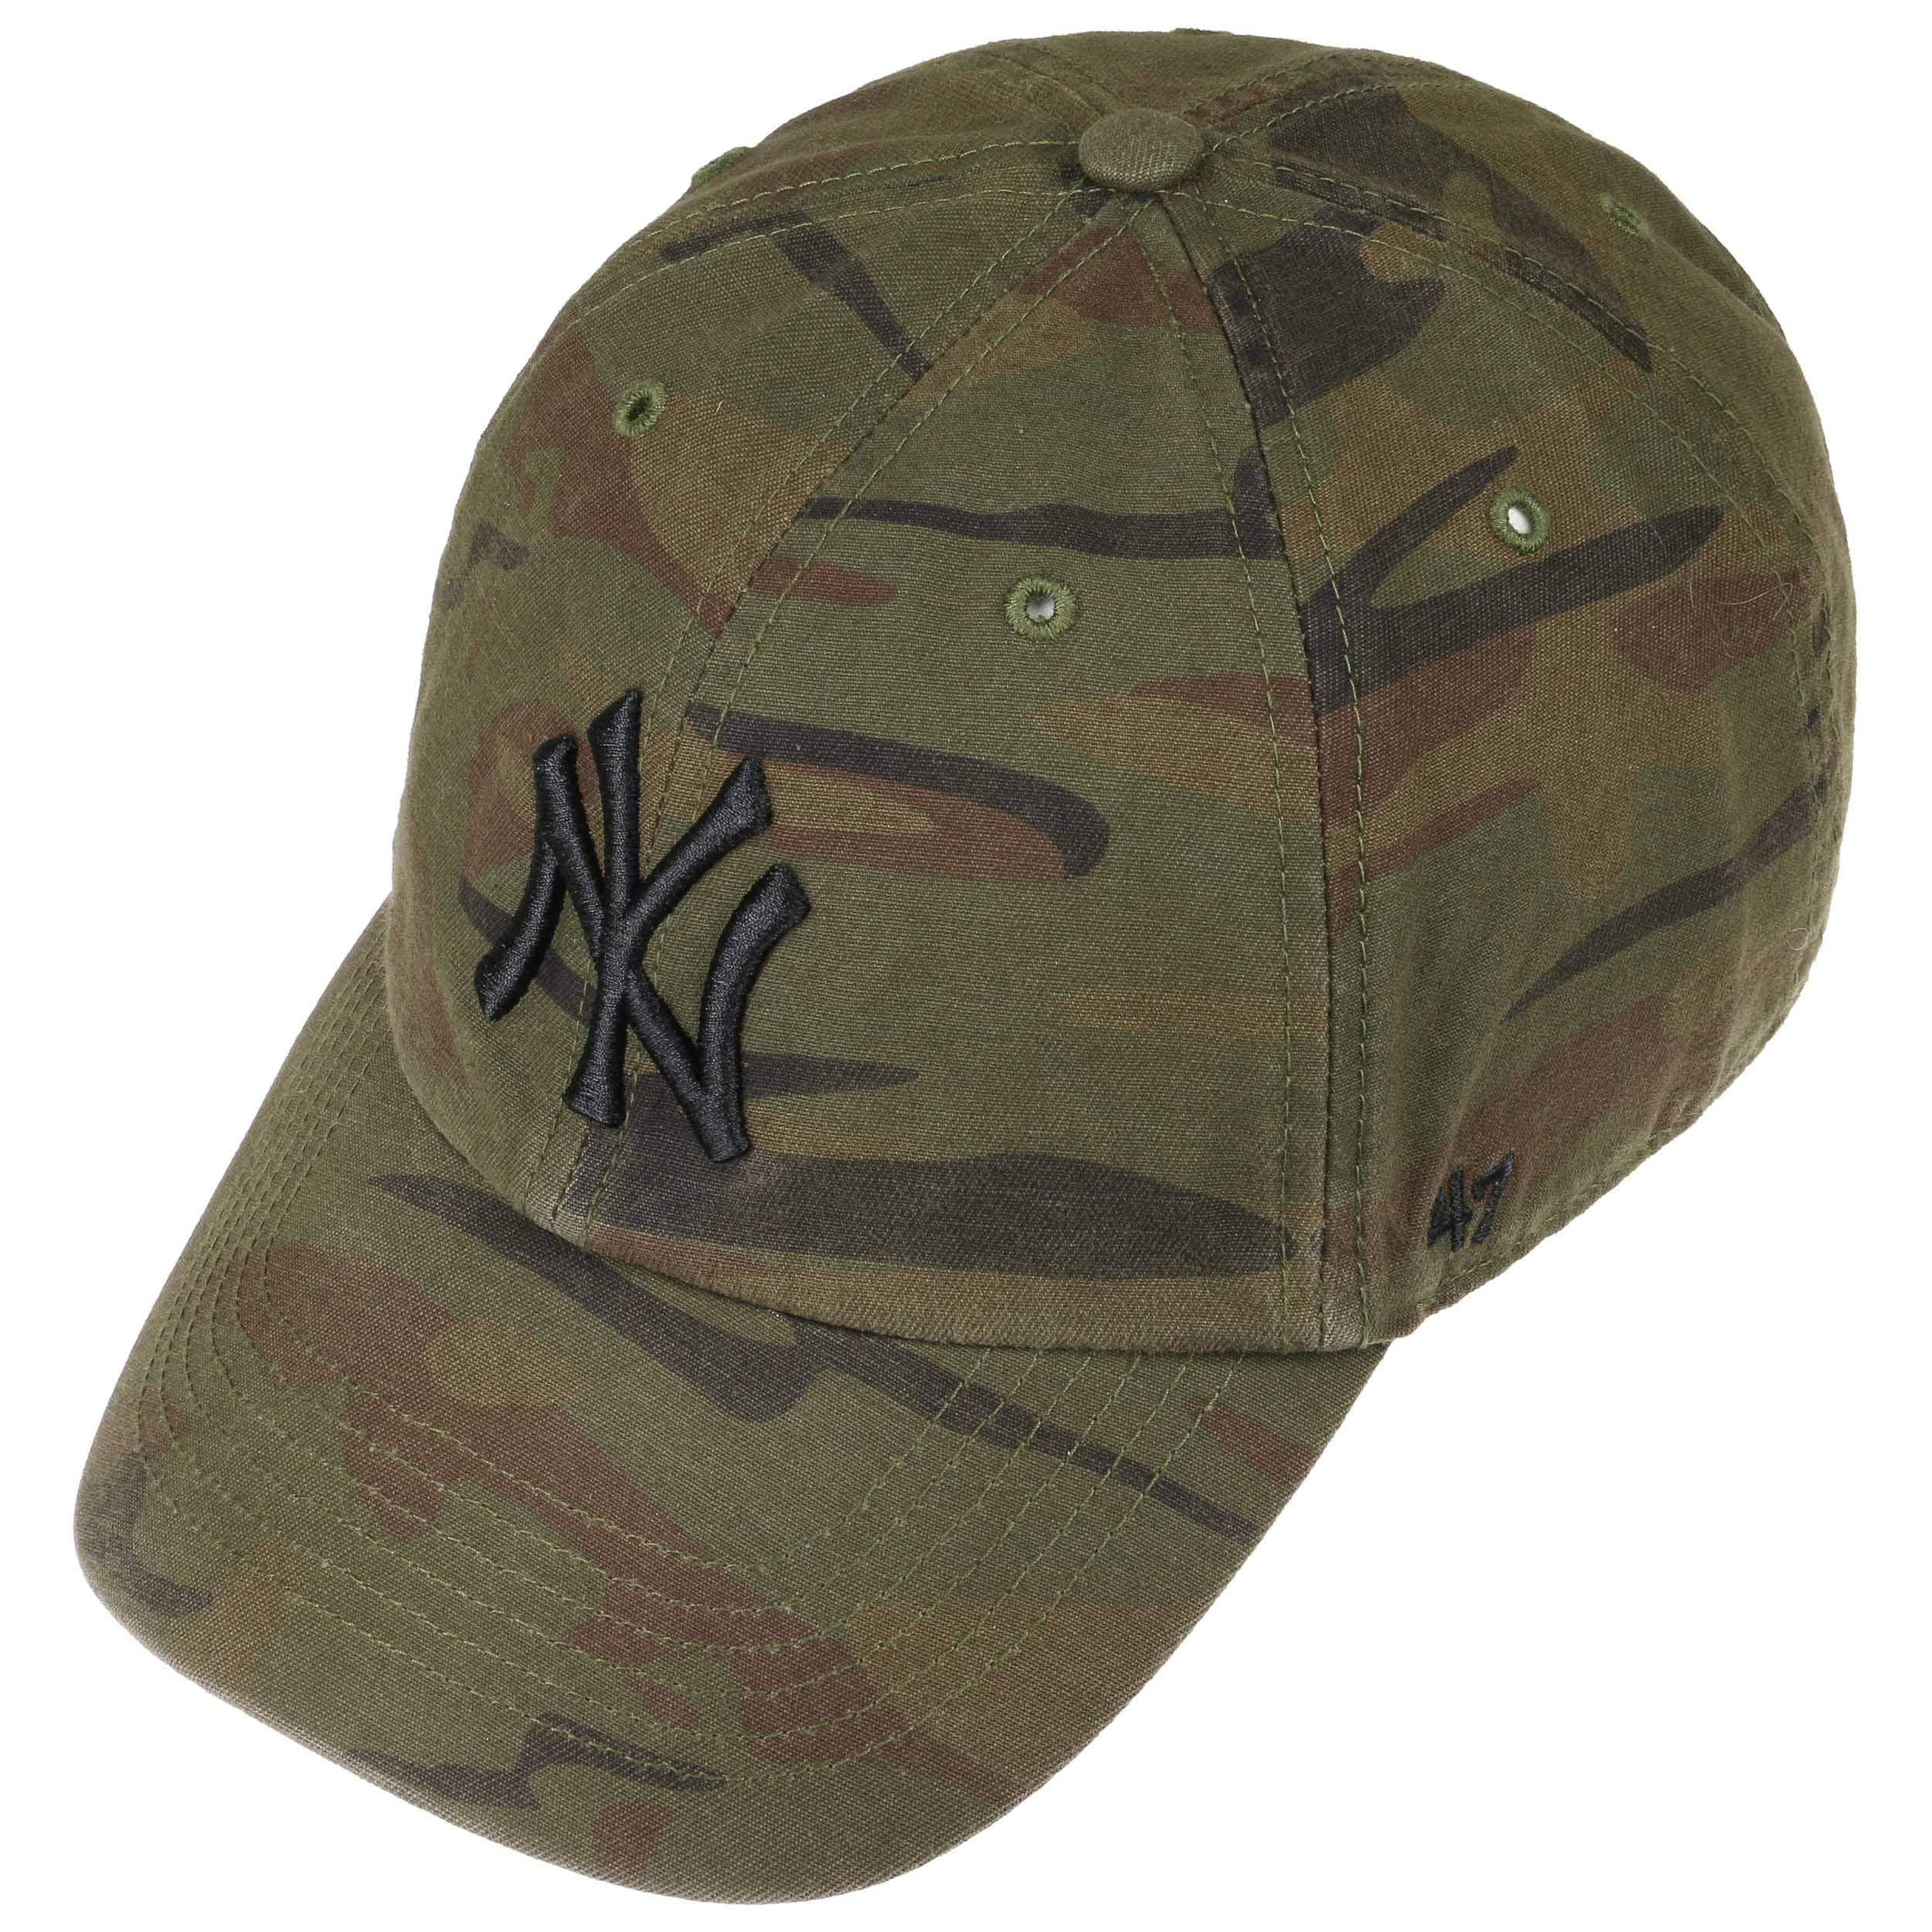 250187aabb4 Clean Up Regiment Yankees Cap by 47 Brand - camouflage 1 ...